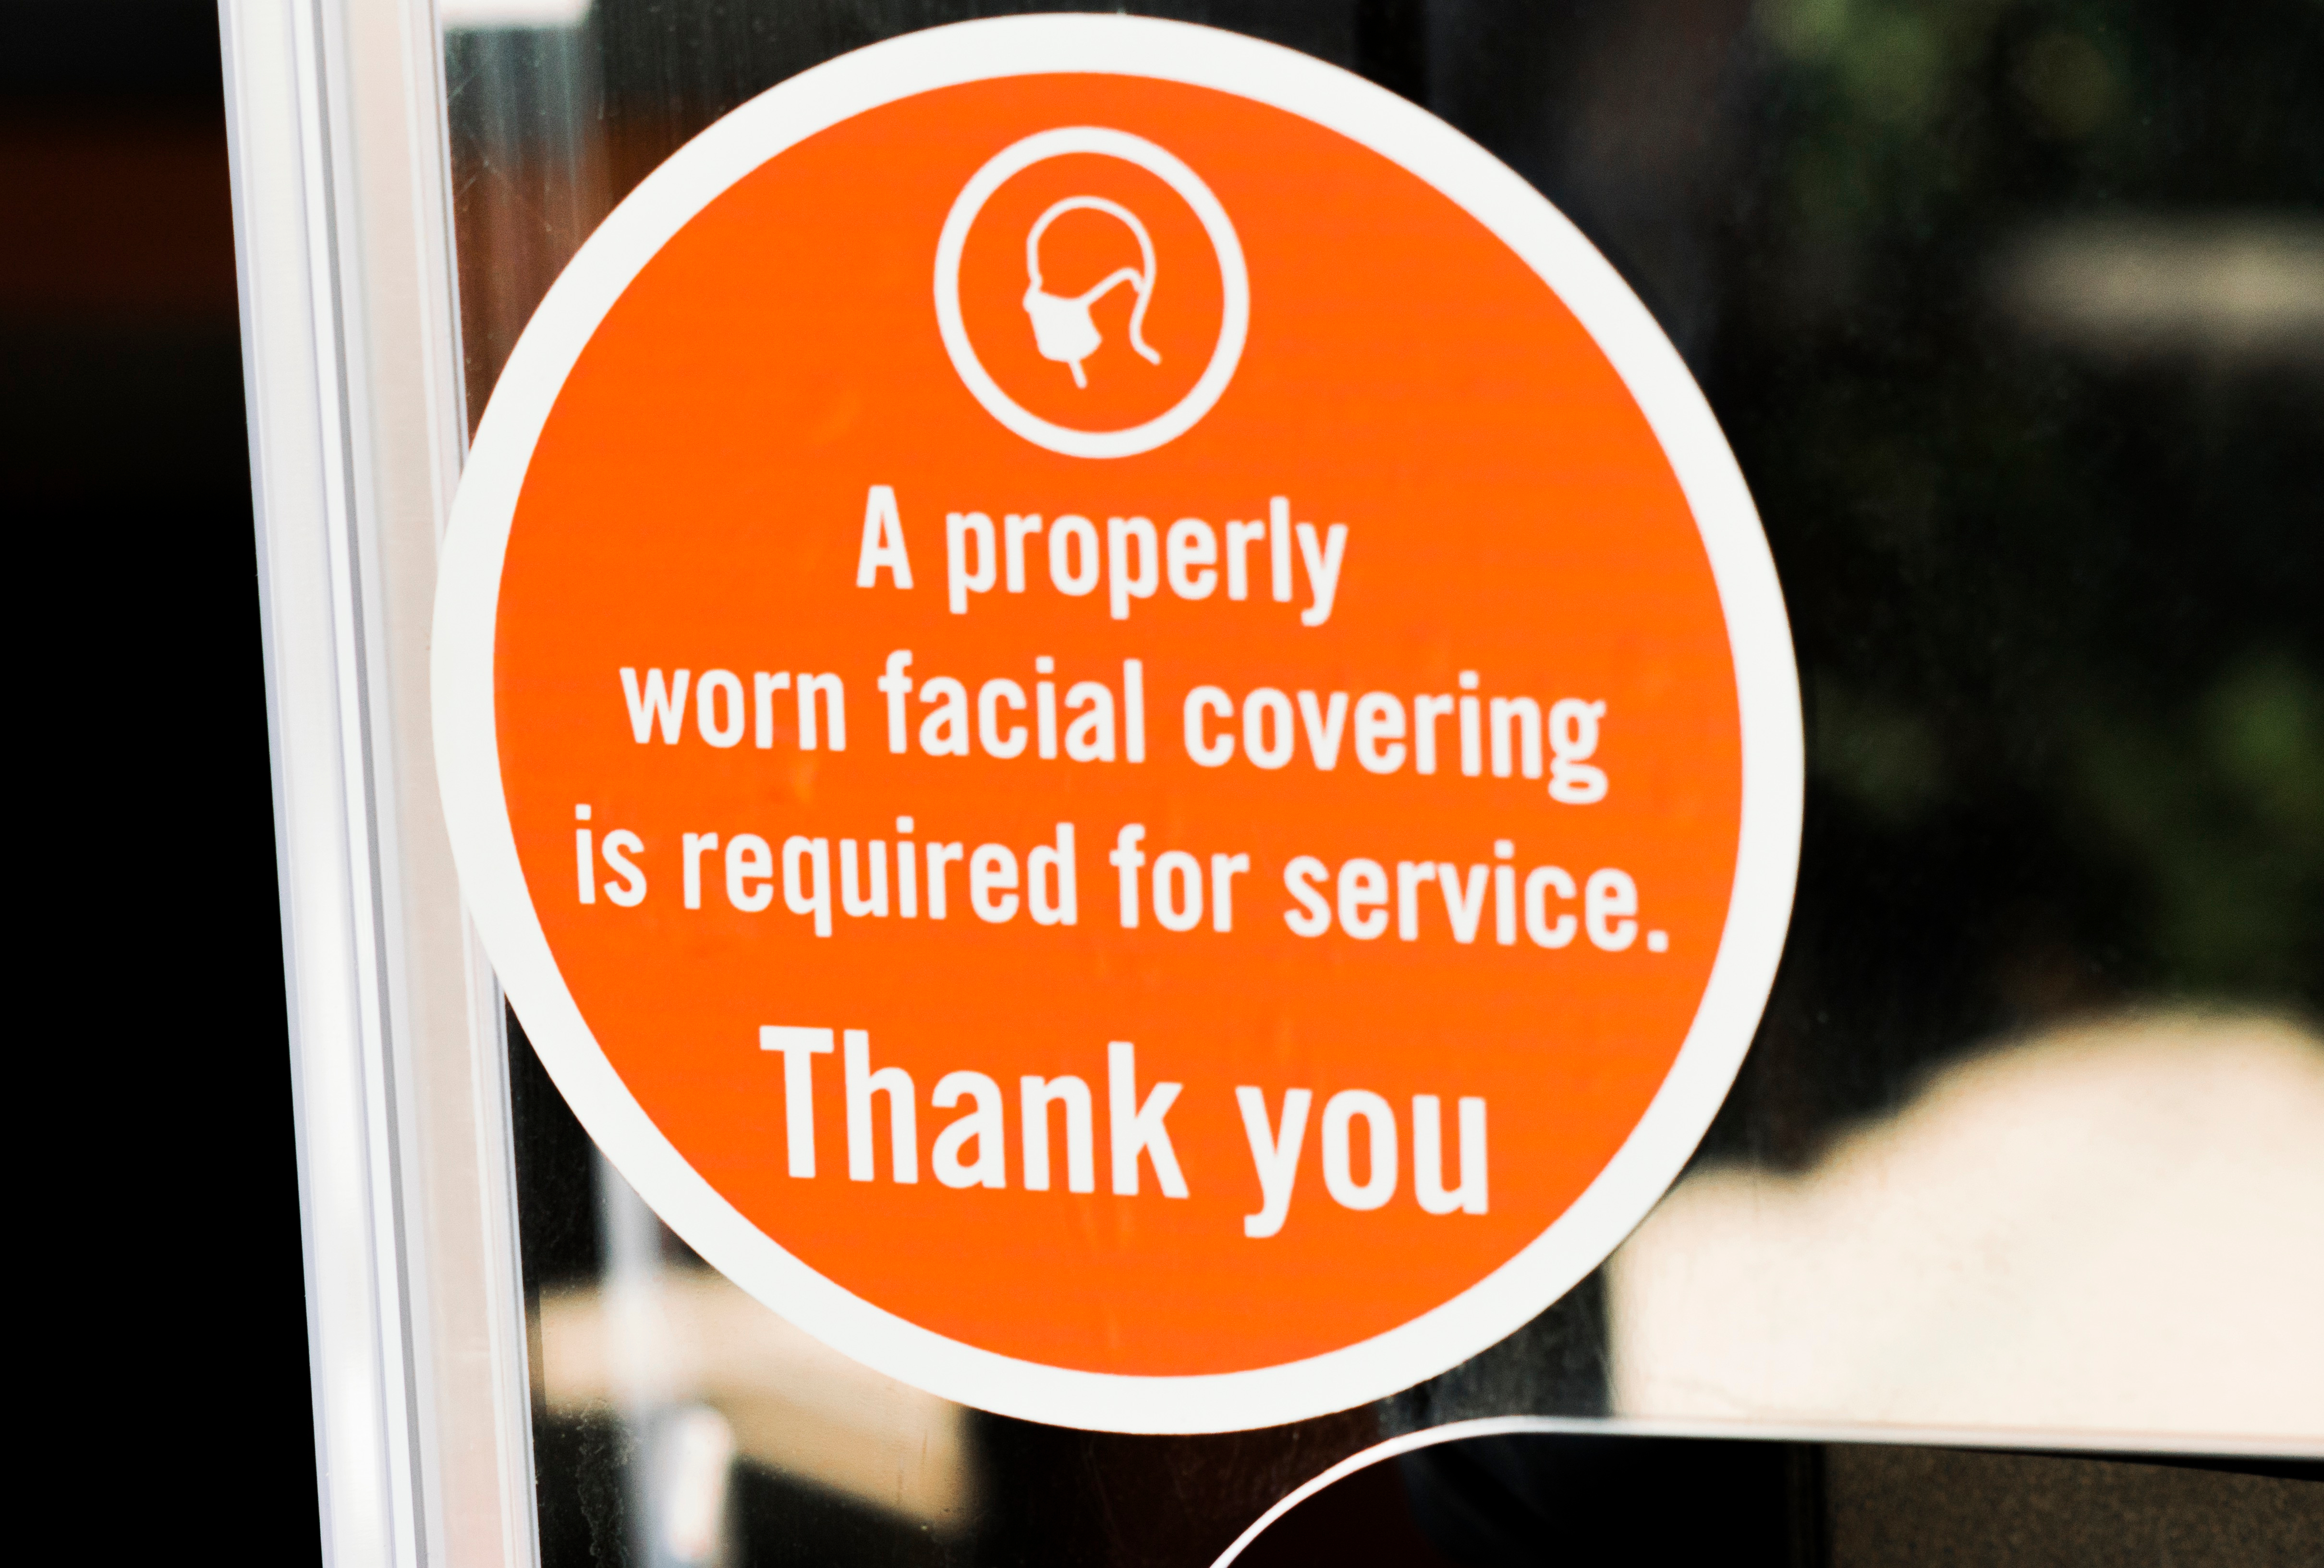 """An orange sign on a storefront window says """"A properly worn facial covering is required for service. Thank you"""""""